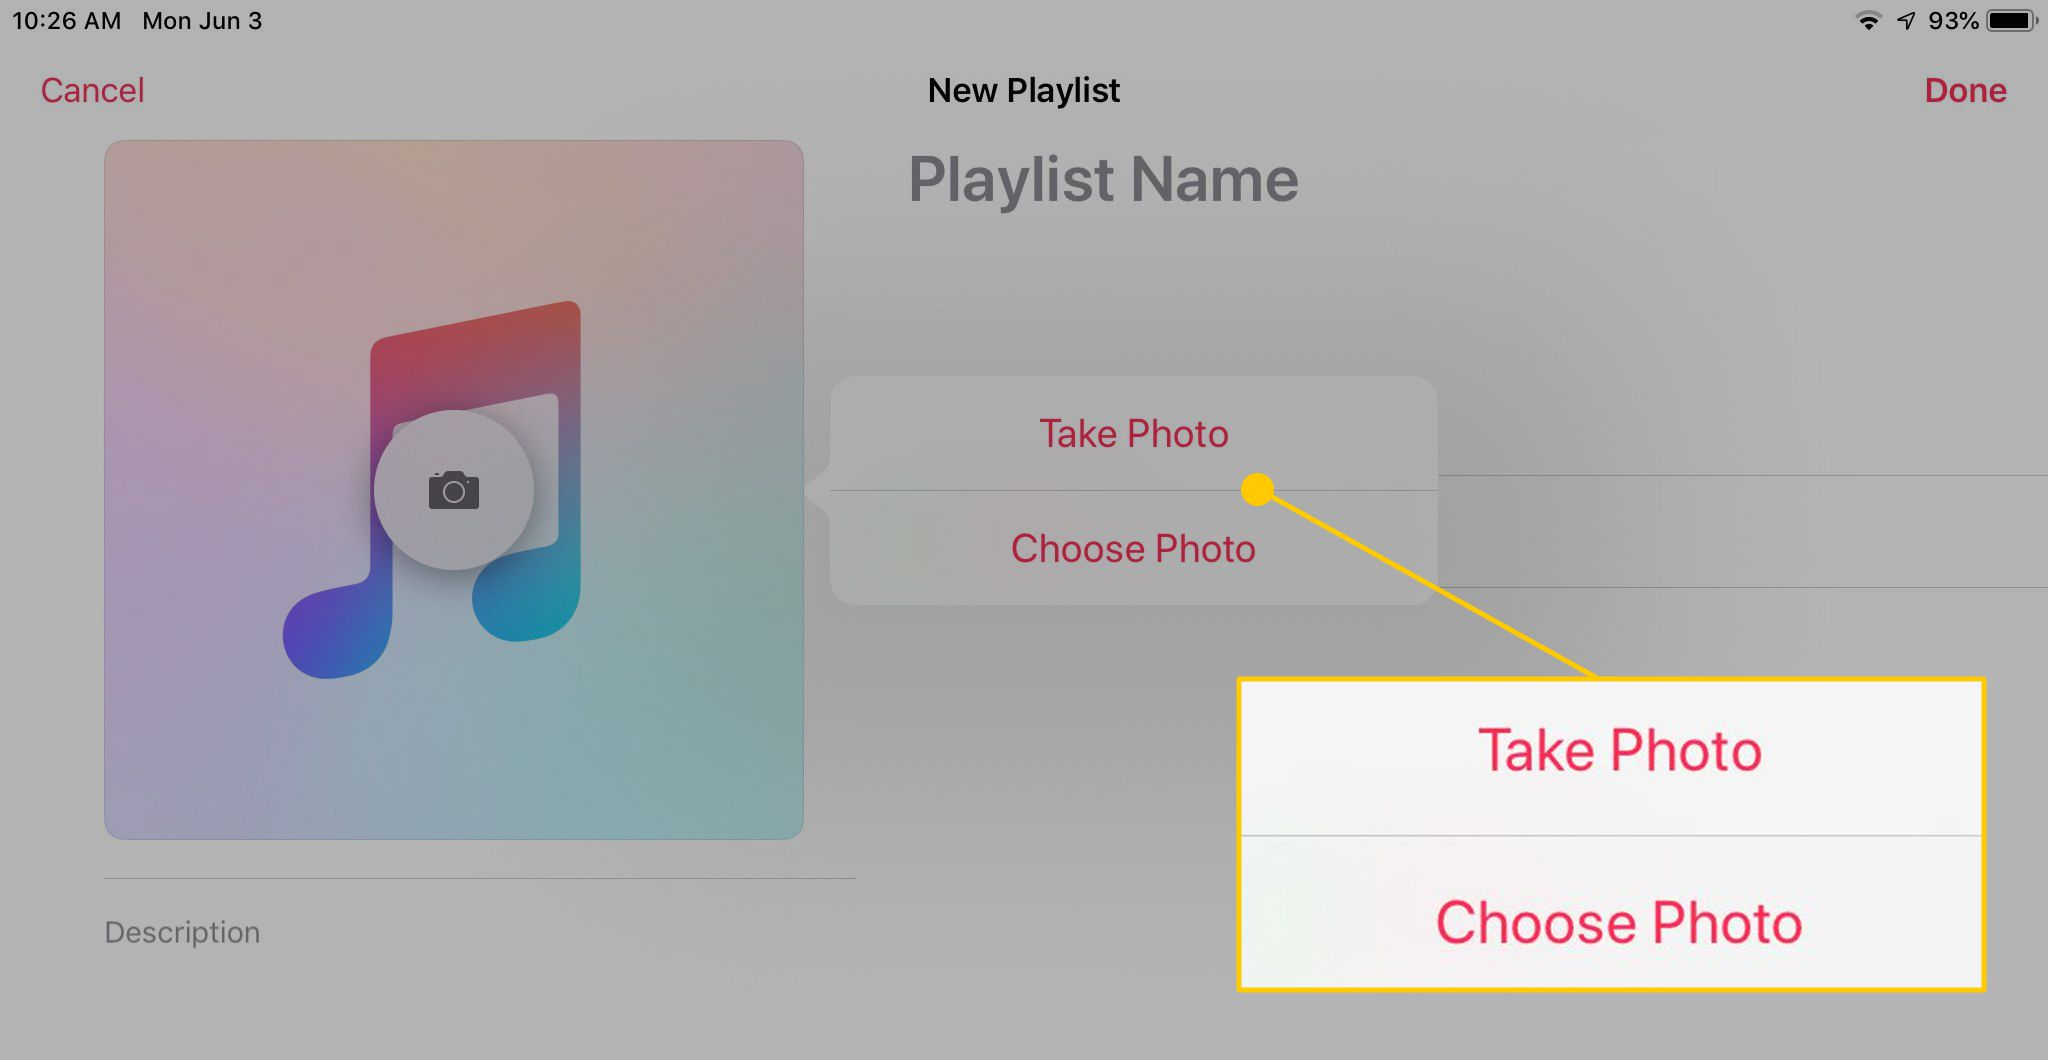 Take or Choose Photo for Playlist in Music app